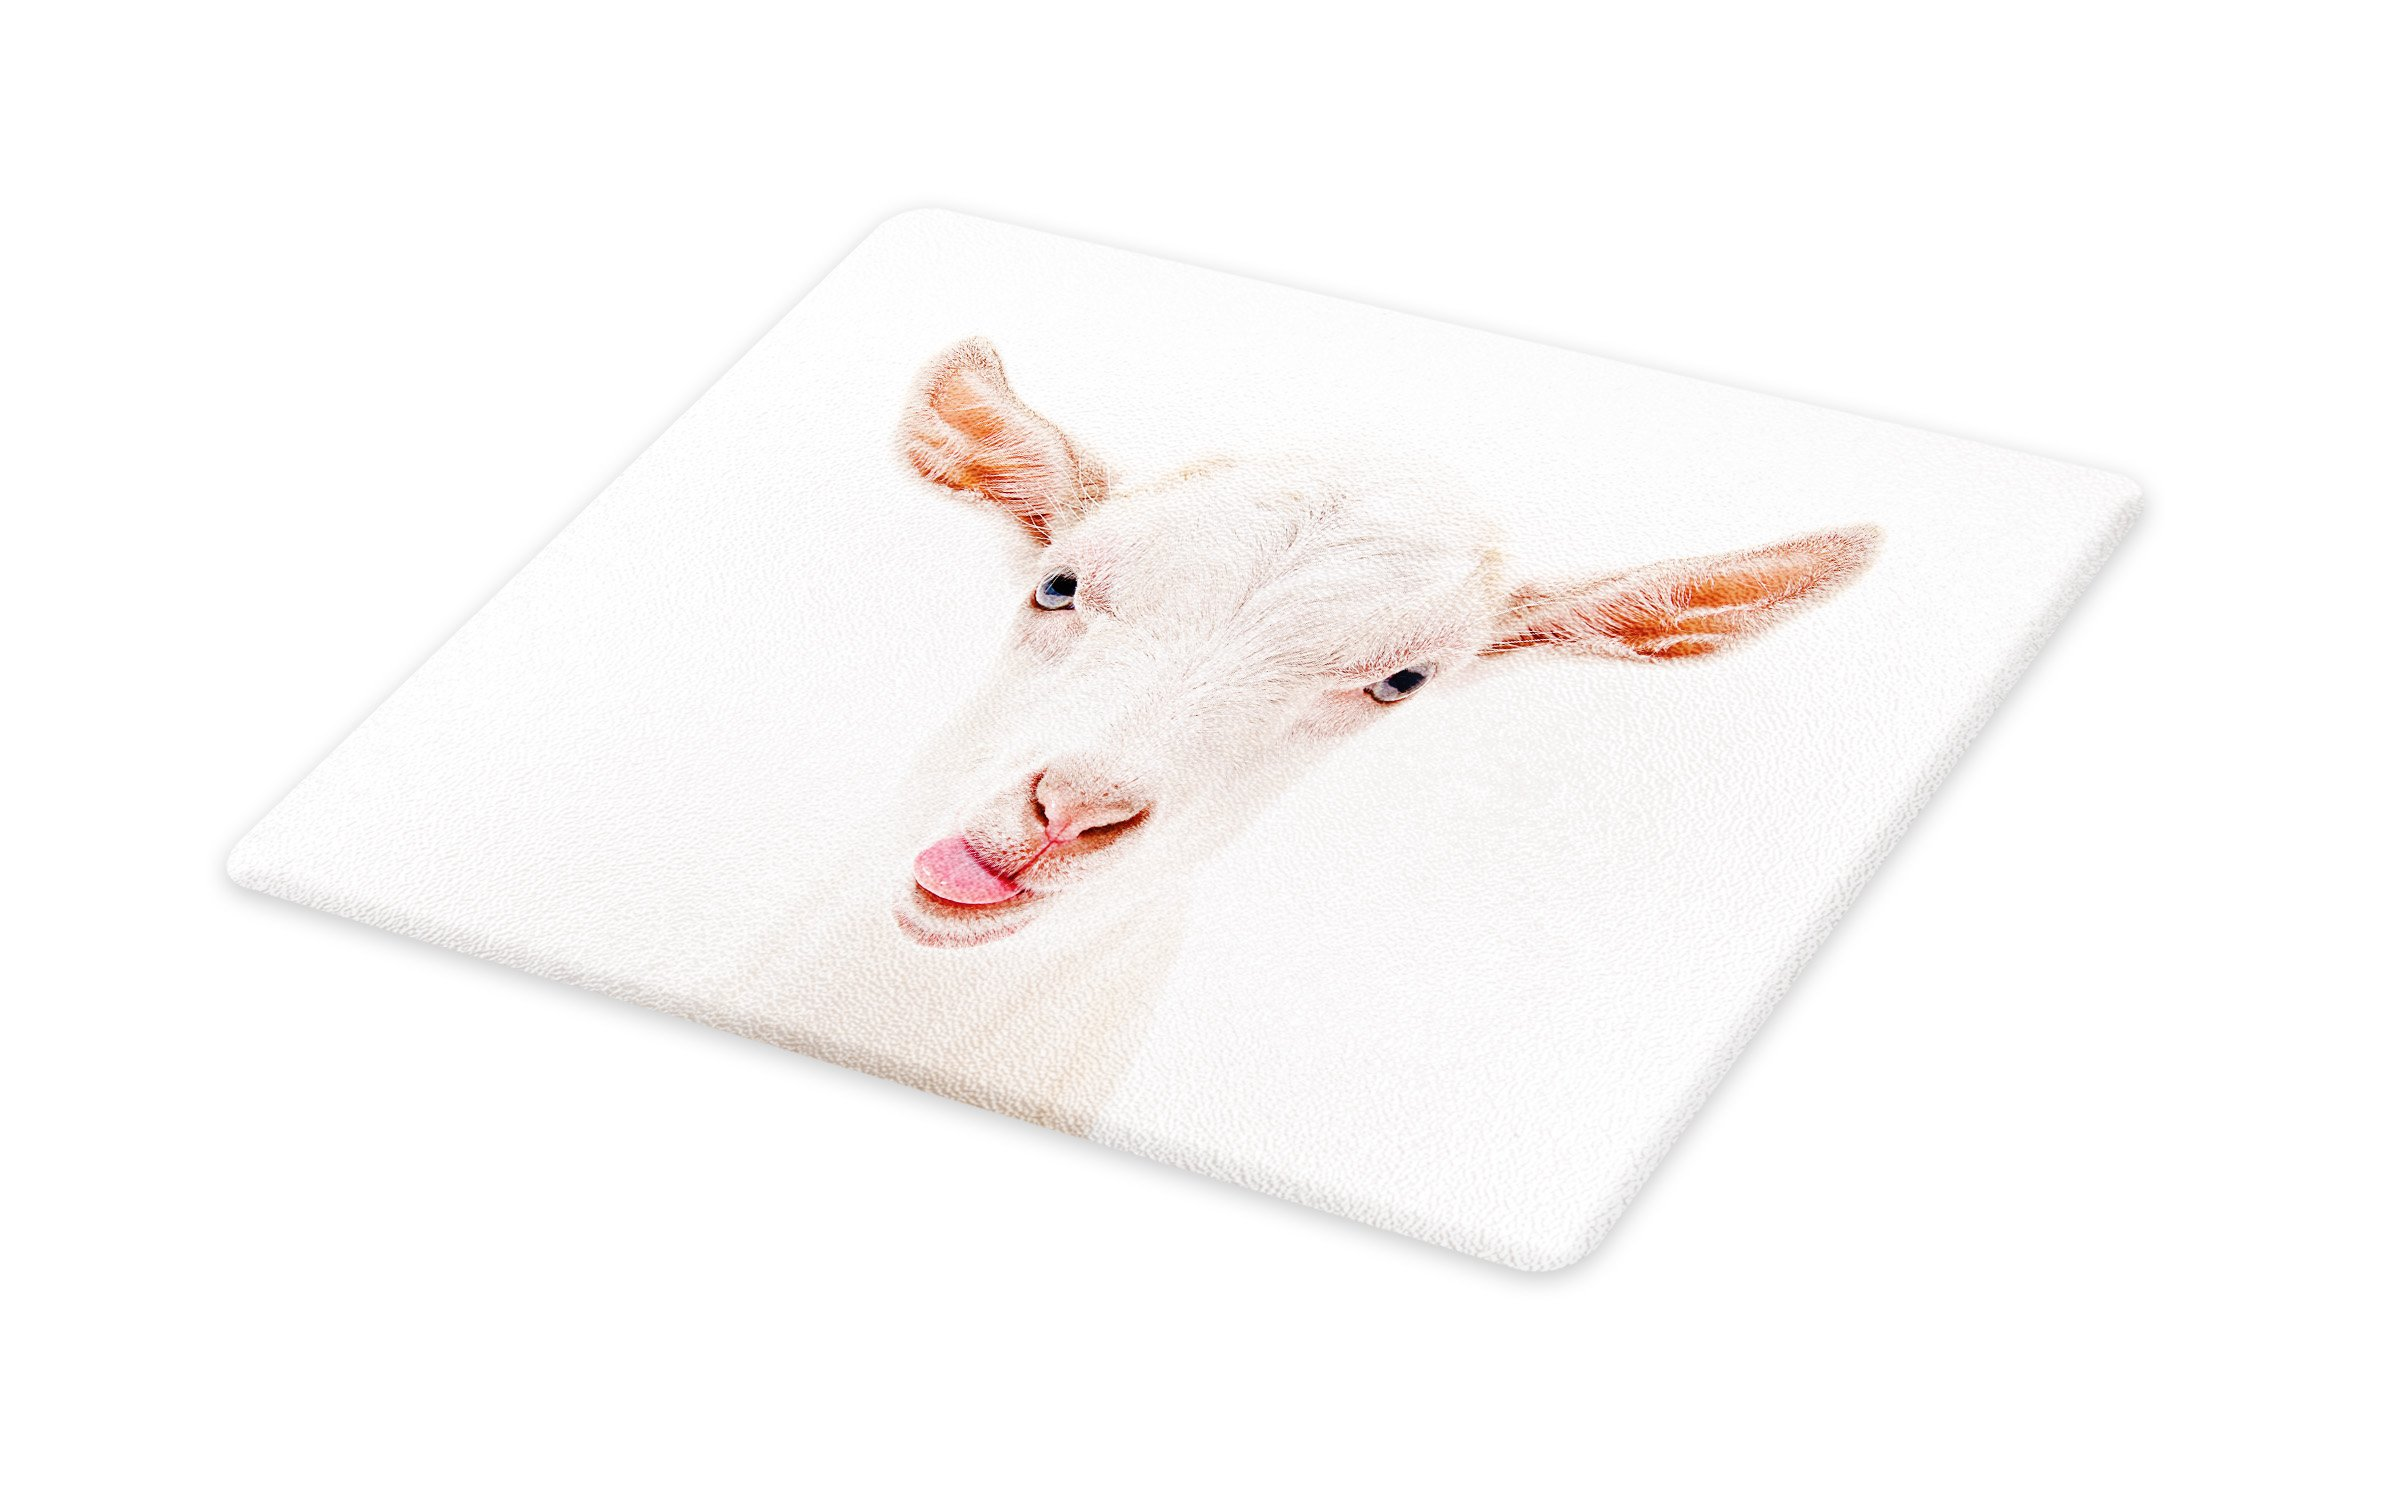 Lunarable Goat Cutting Board, Portrait of a Goat with Its Tongue Out Animal Photography White Furry Mammal, Decorative Tempered Glass Cutting and Serving Board, Large Size, Coral Pink White